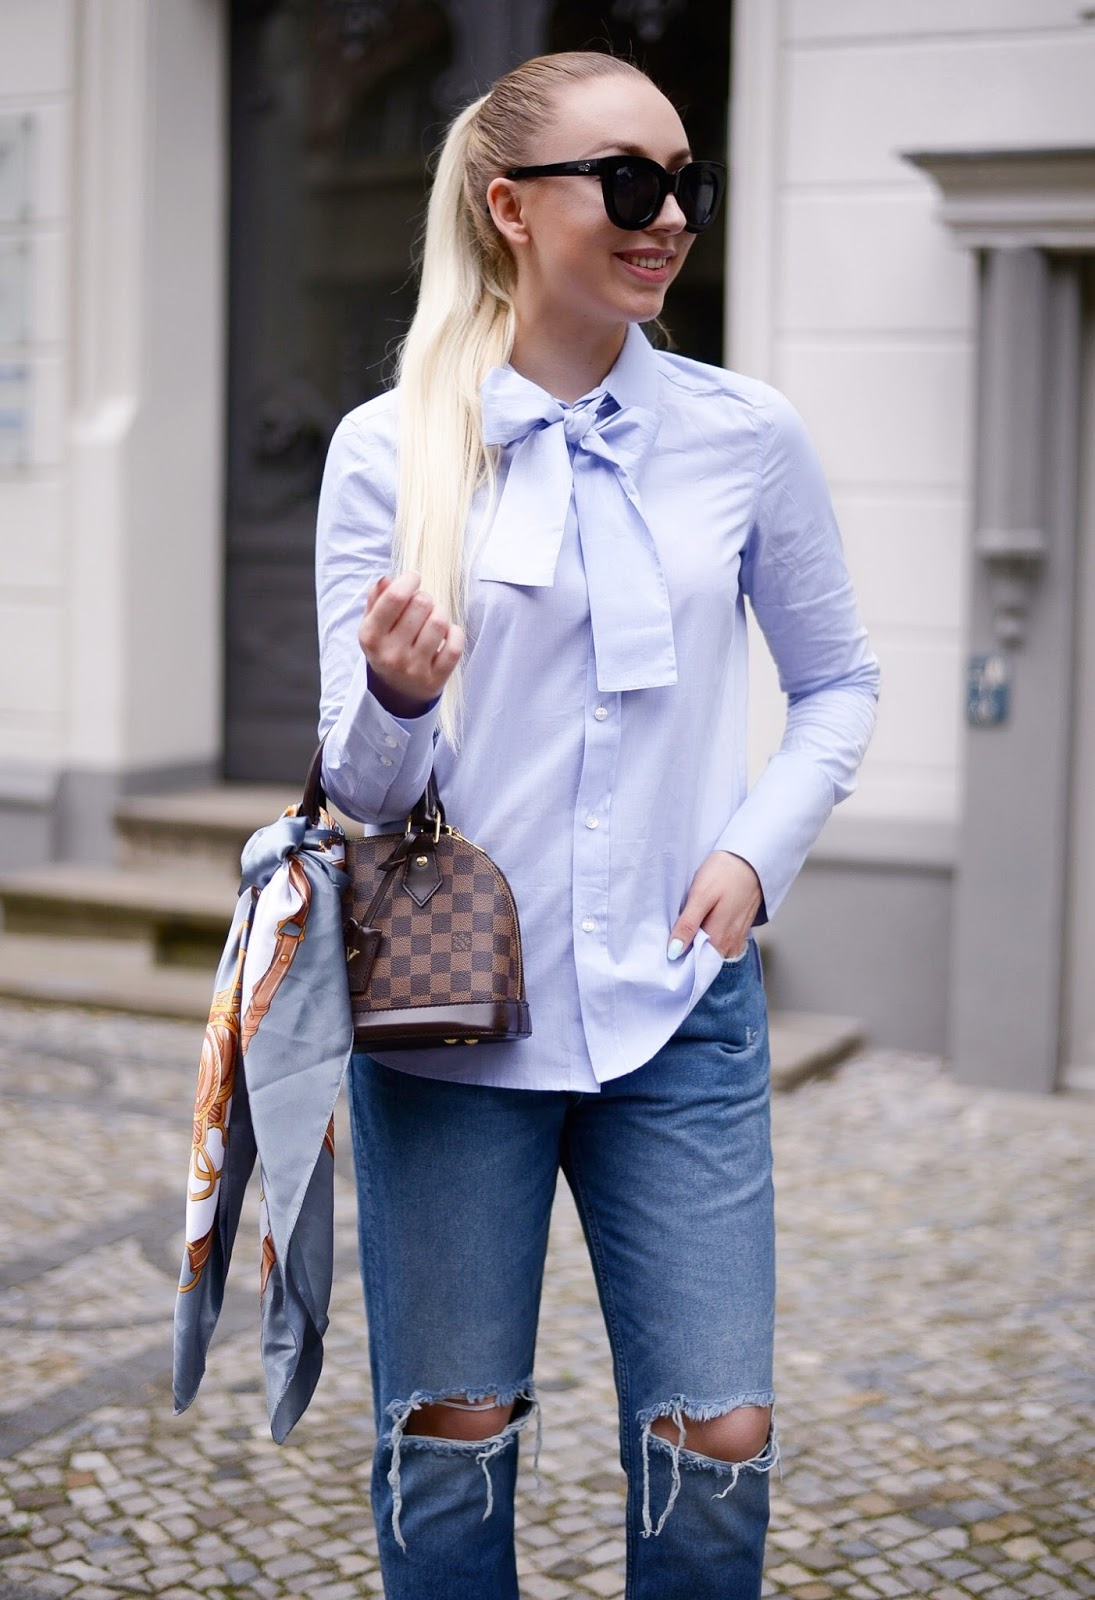 chic baby blue blouse with bow